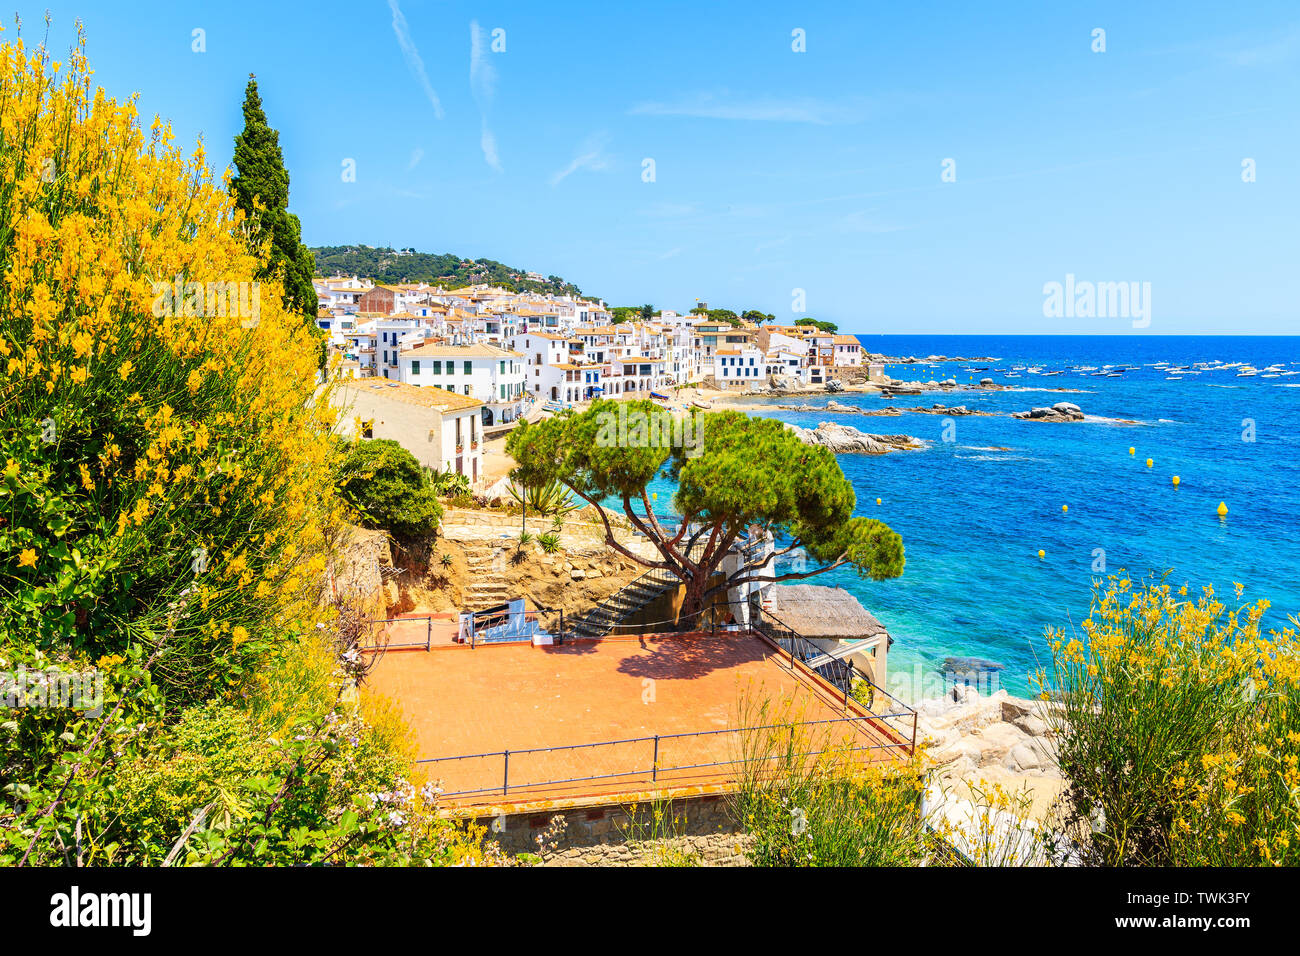 Amazing view of Calella de Palafrugell, scenic fishing village with white houses and sandy beach with clear blue water, Costa Brava, Catalonia, Spain Stock Photo